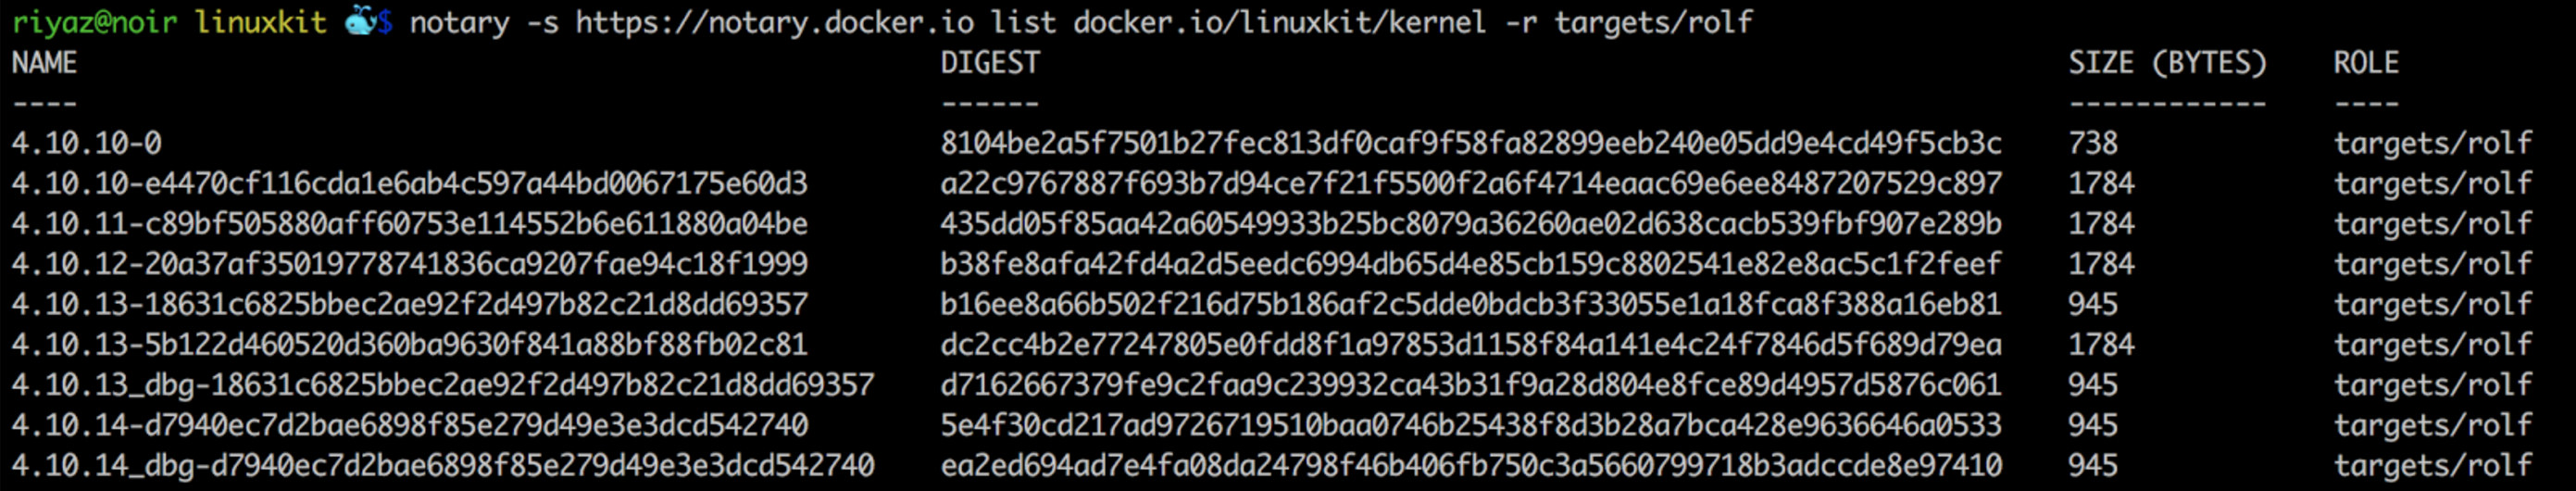 Notary signatures on linuxkit/kernel images